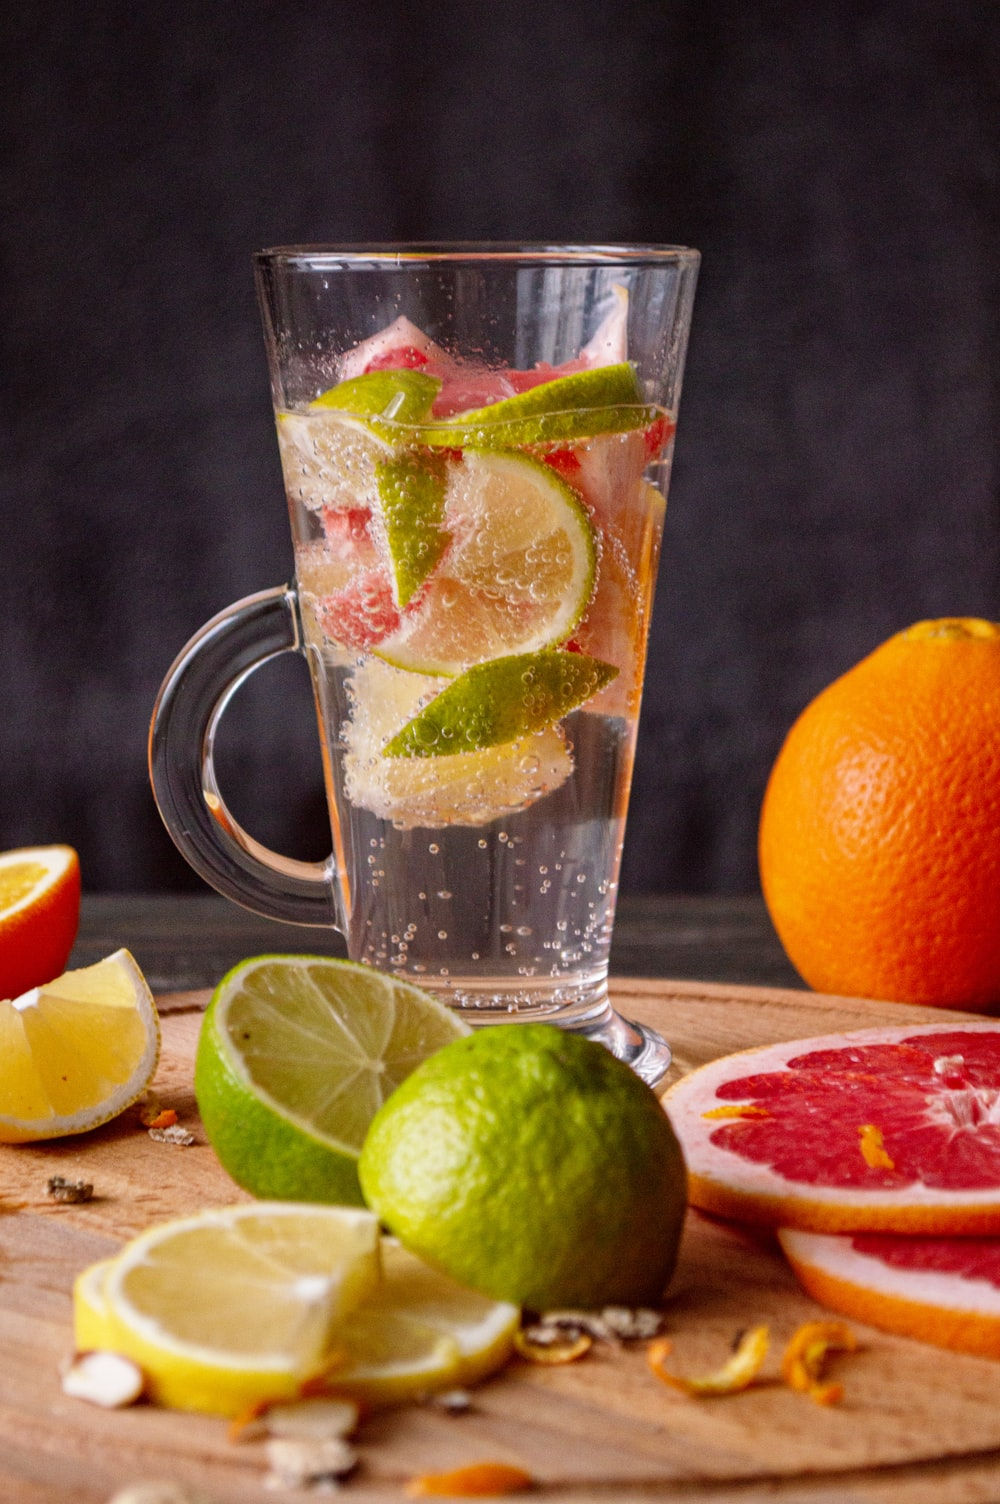 clear glass mug with sliced orange fruit and water